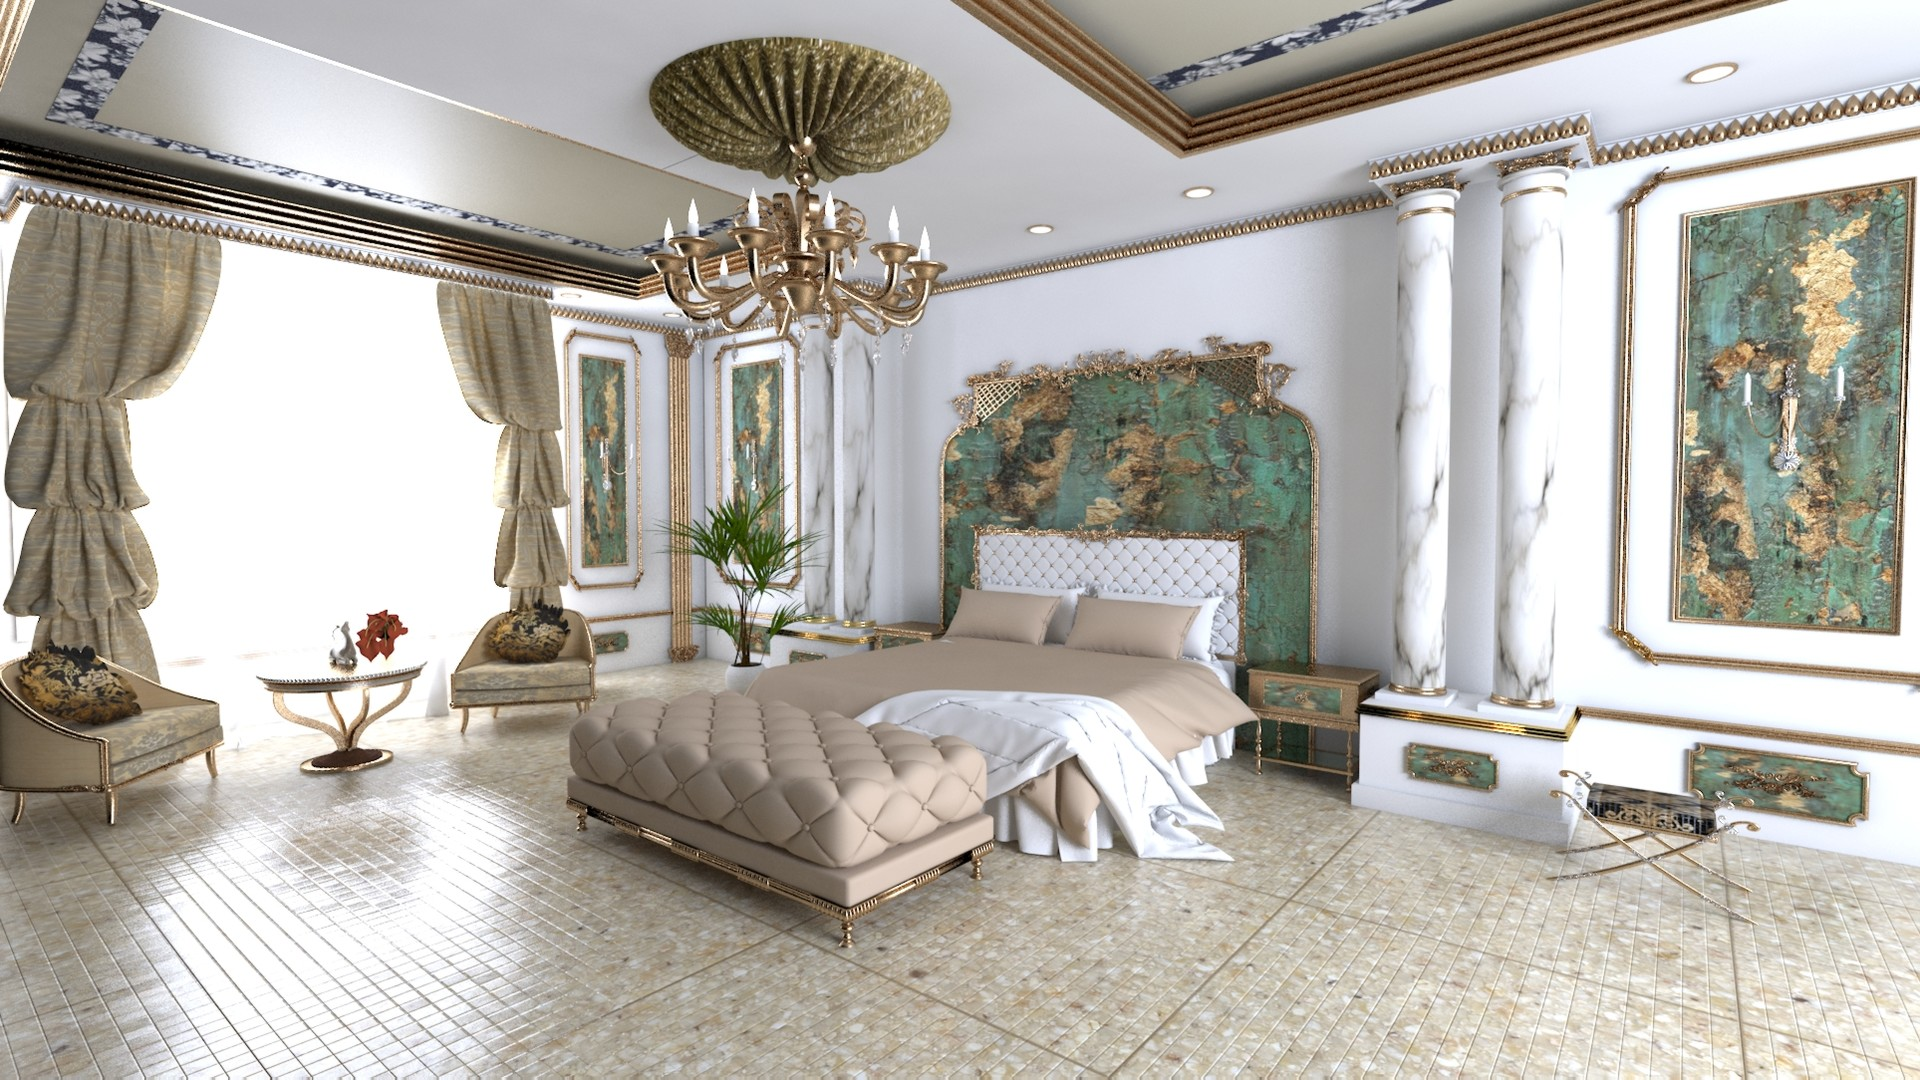 Marry O Mariya 3d Royal Bedroom Interior Design